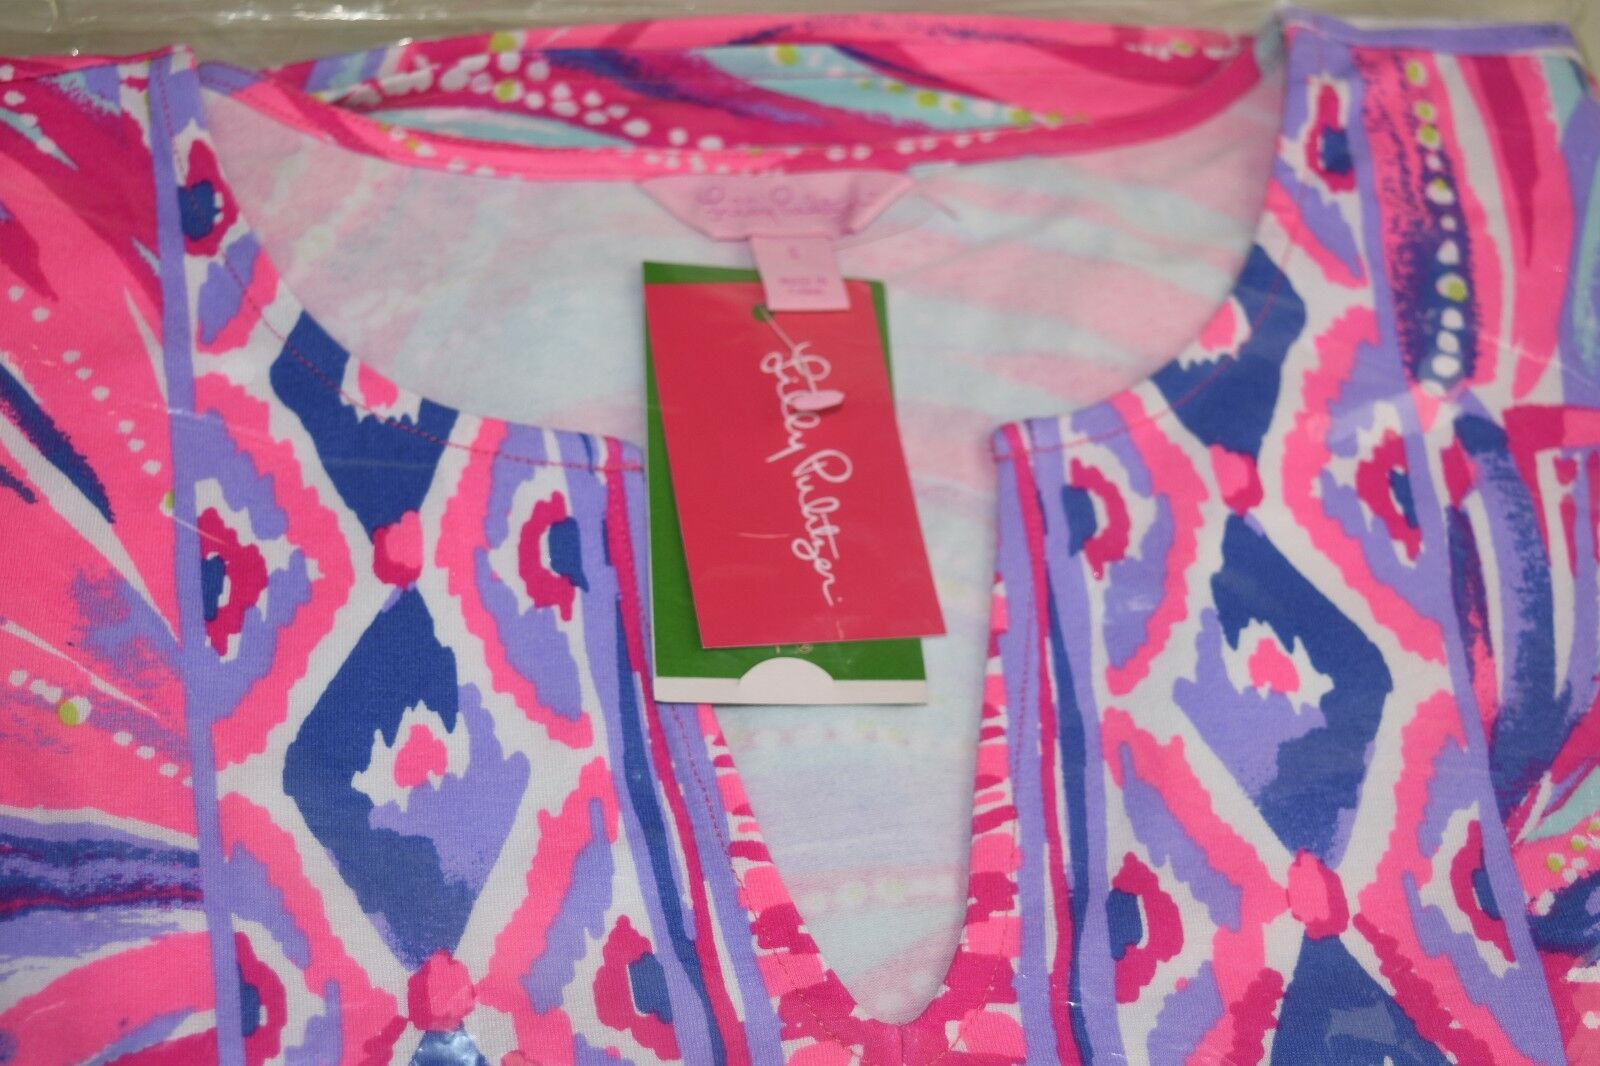 f1405641c09 Lilly Pulitzer Gianna Tunic Dress Oh My Guava for sale online | eBay